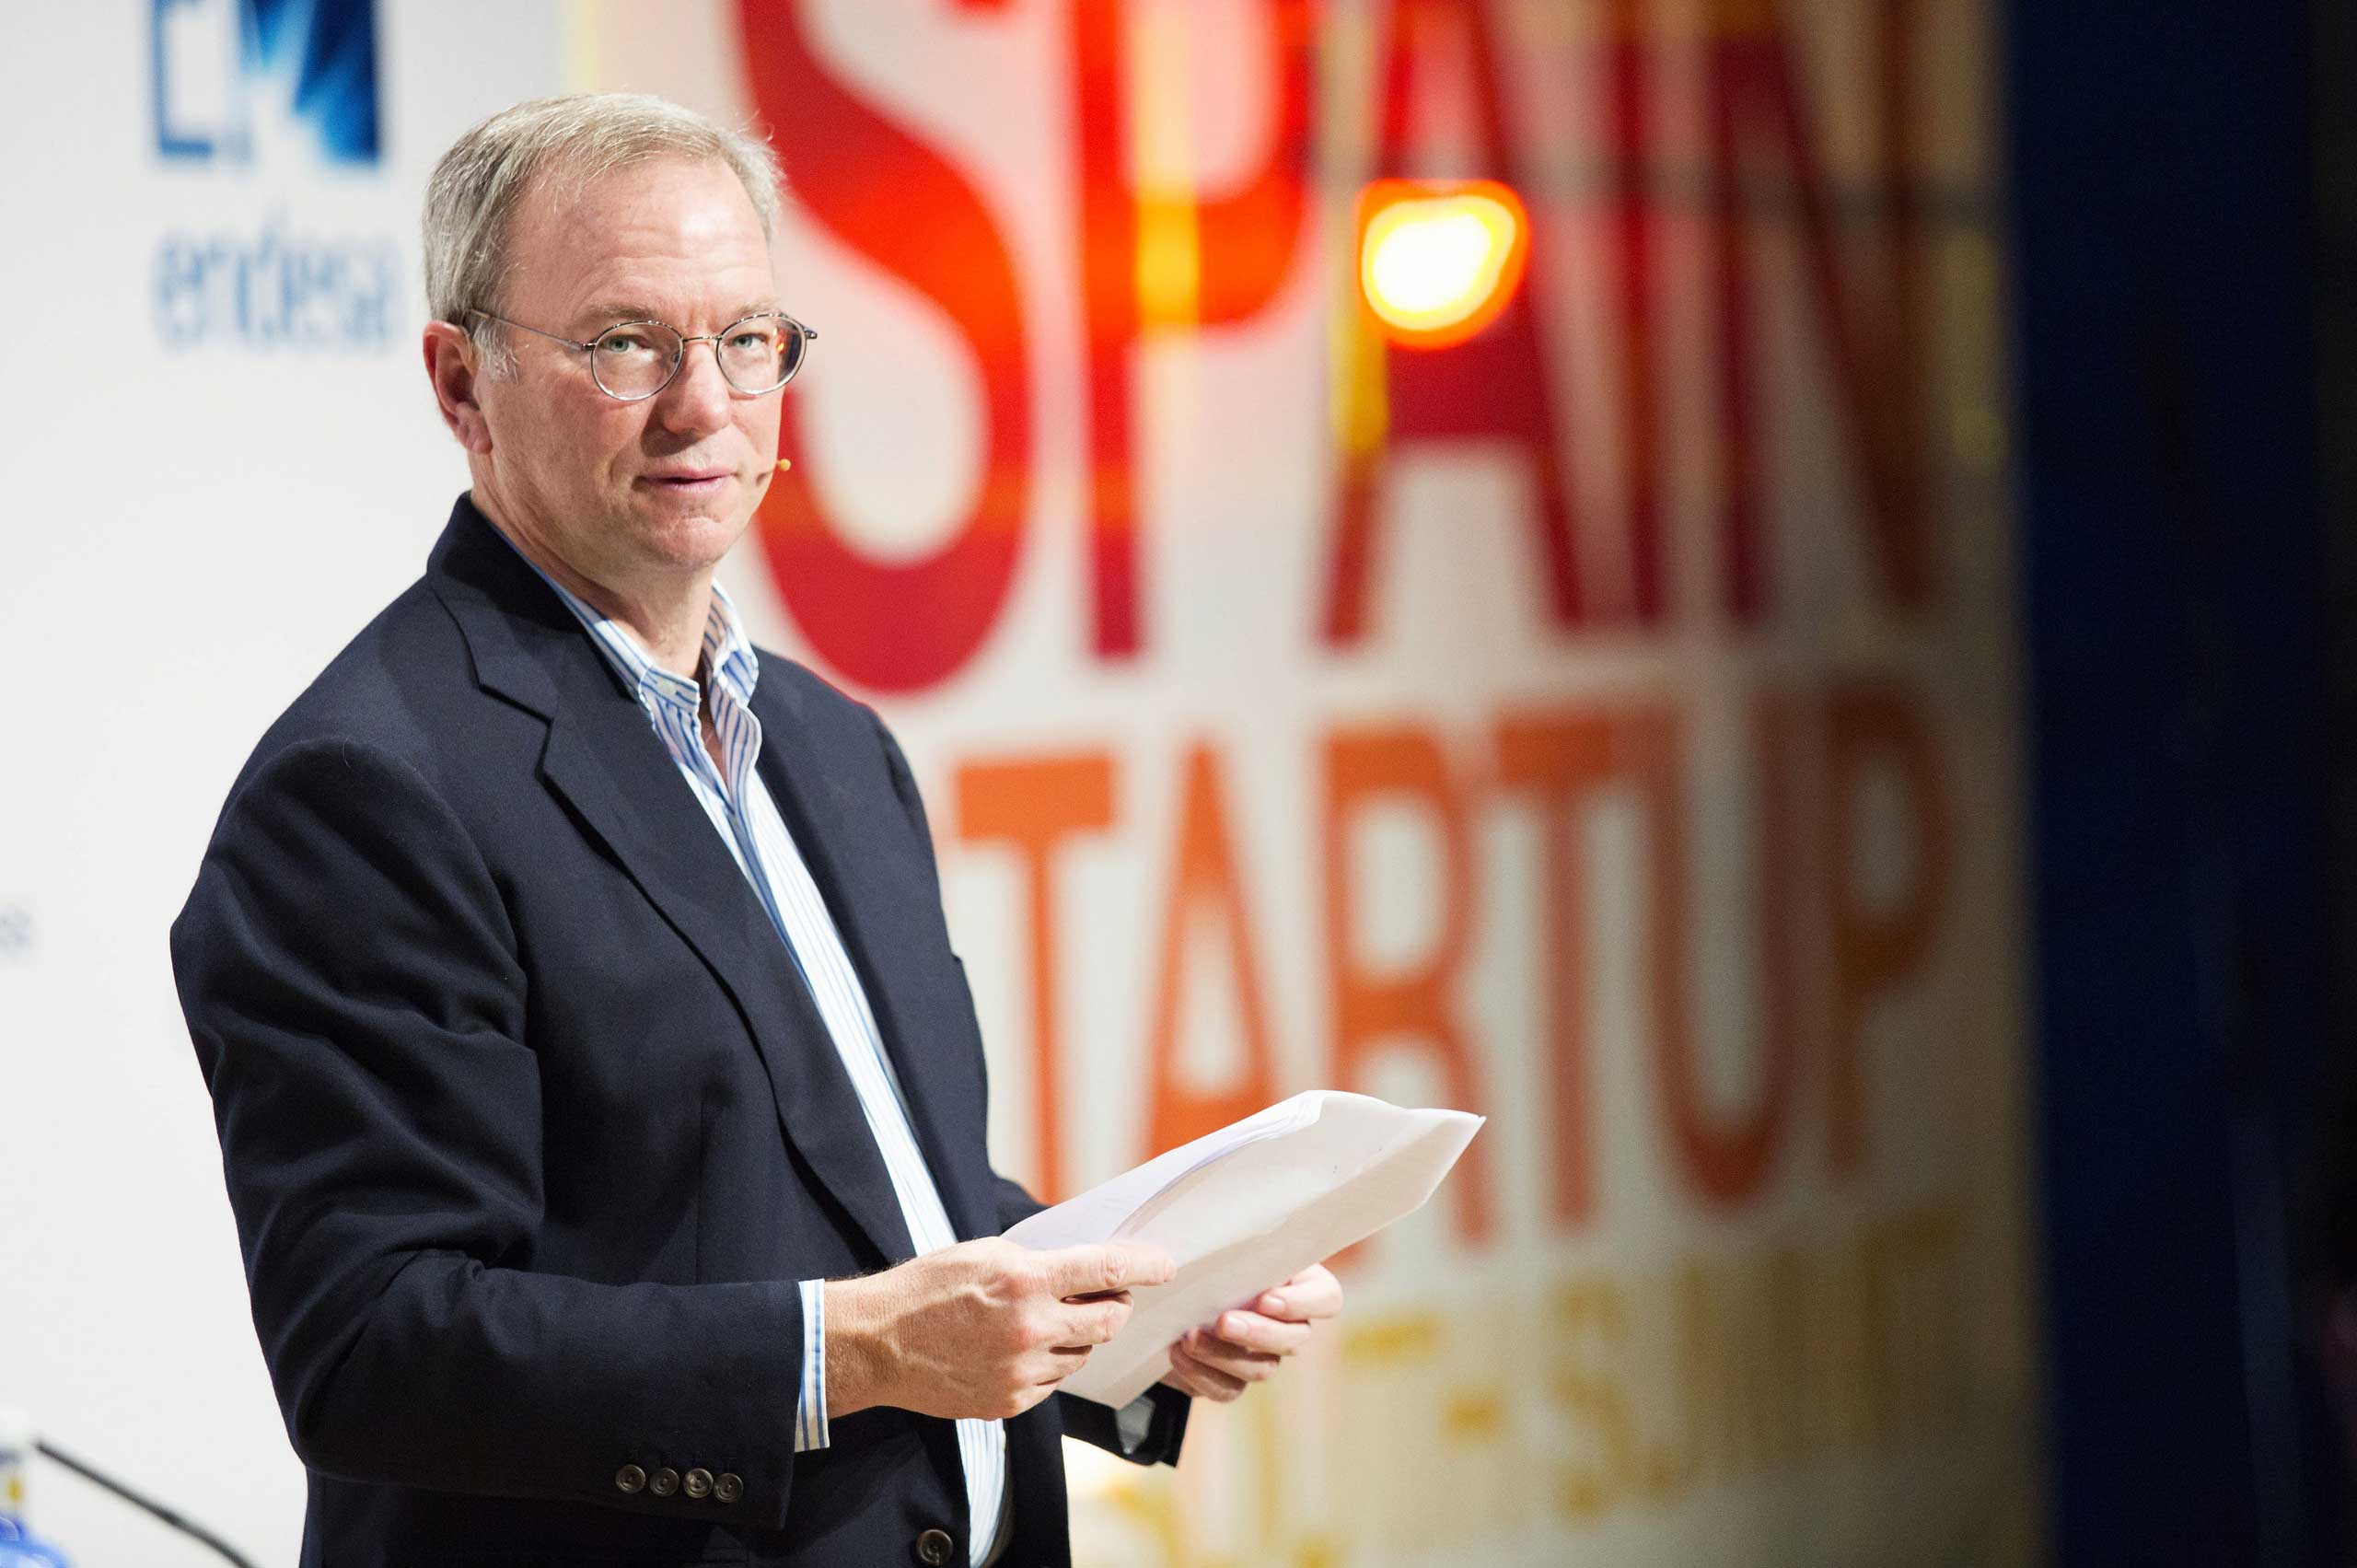 Google Executive Chairman Eric Schmidt speaks at the 'The South Summit'- Spain Start-Up convention at Las Ventas bullring in Madrid on Oct. 10, 2014.